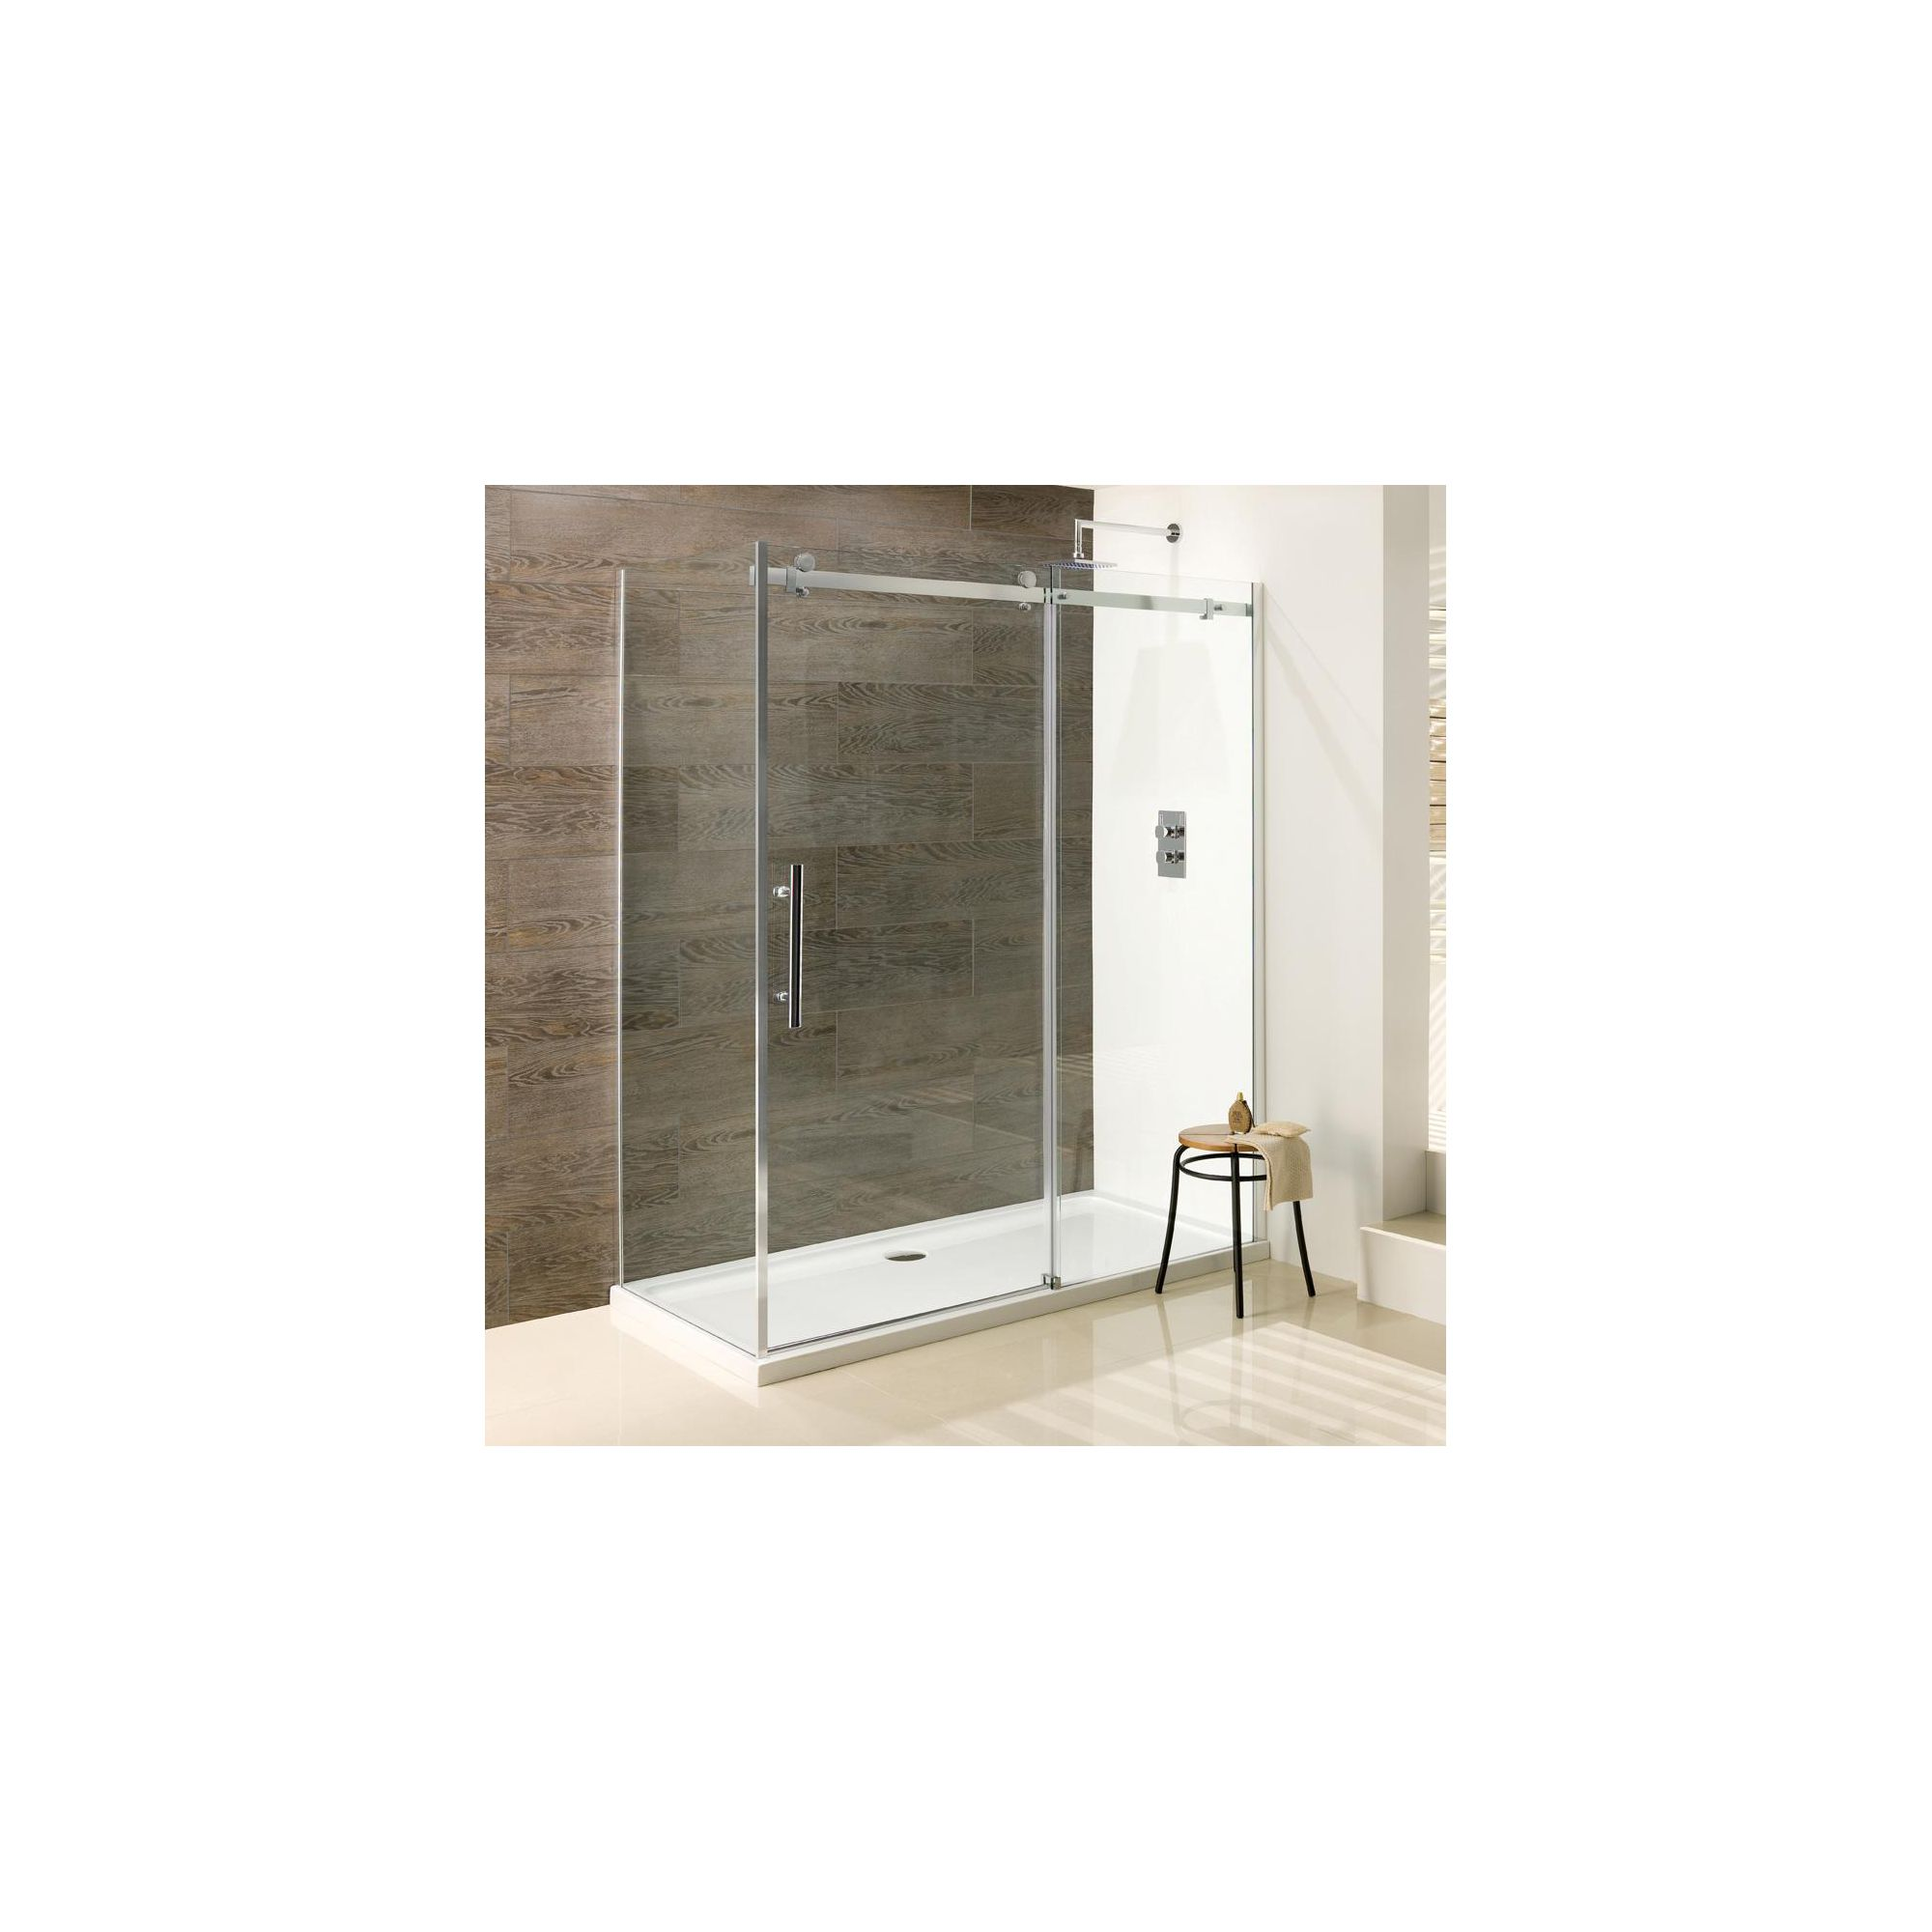 Duchy Deluxe Silver Sliding Door Shower Enclosure with Side Panel 1100mm x 760mm (Complete with Tray), 10mm Glass at Tesco Direct